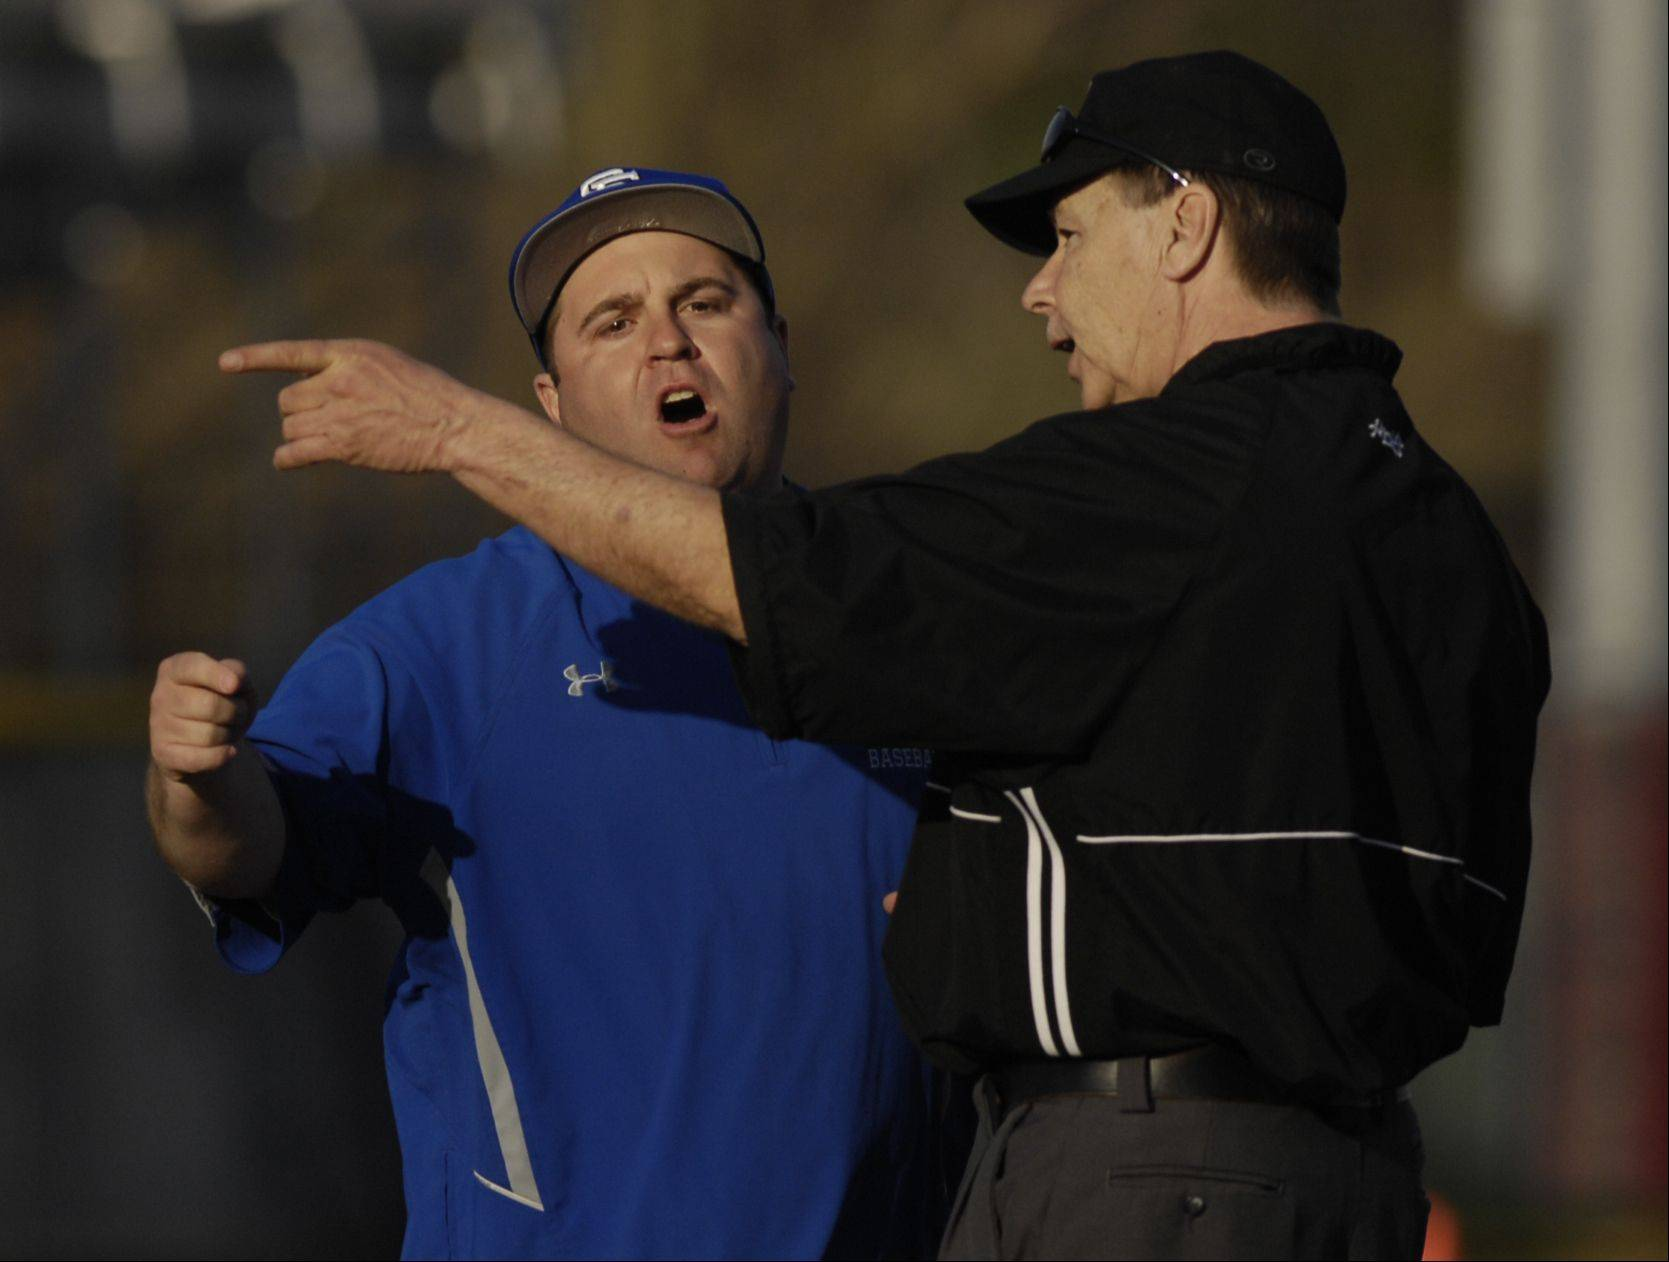 St. Francis head coach Rich Janor argues a call during their loss to Montini, Monday.